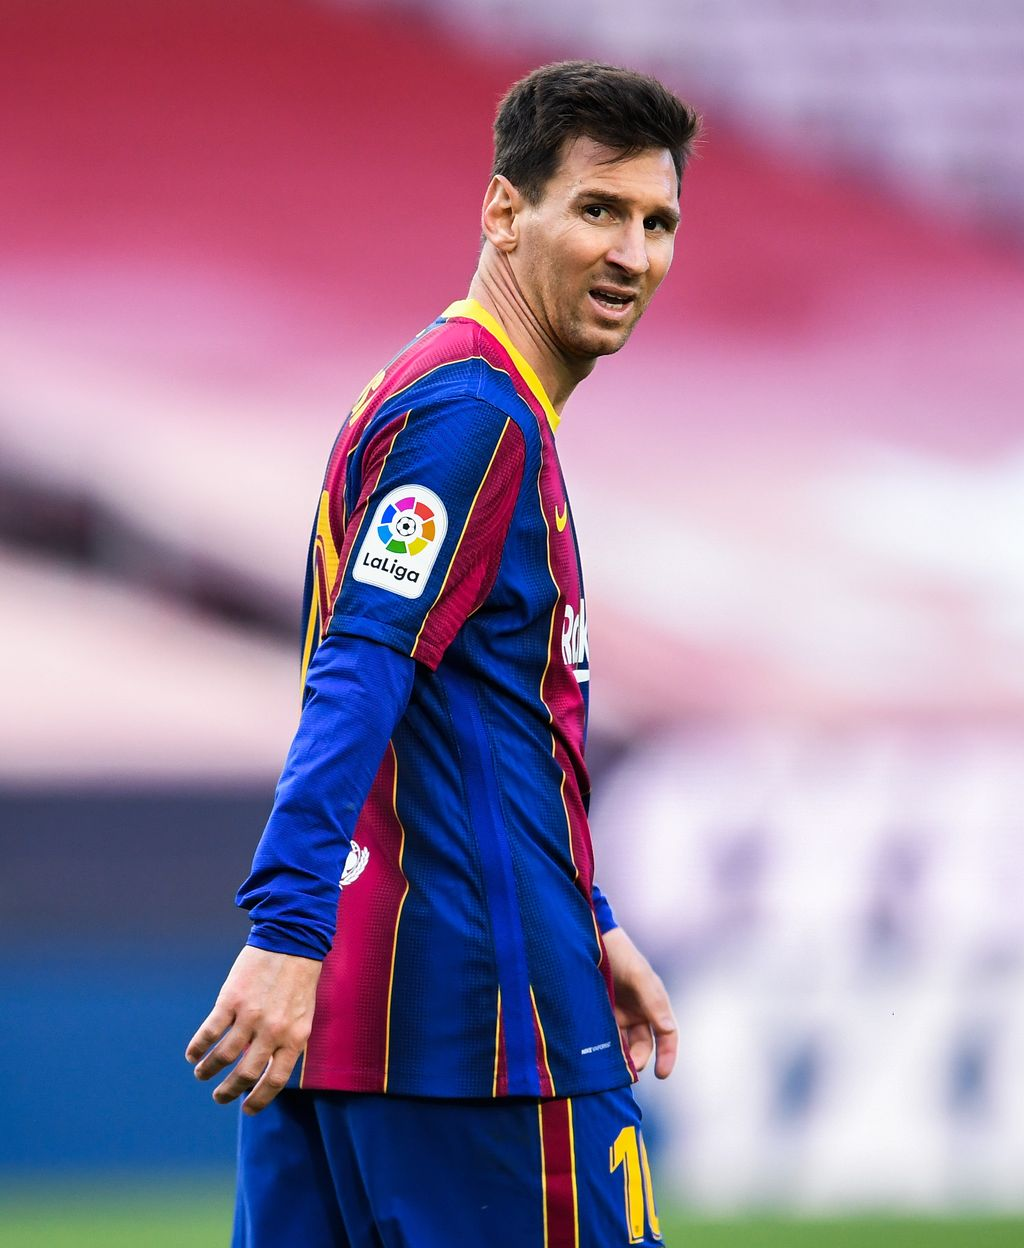 BARCELONA, SPAIN - MAY 16: Lionel Messi of FC Barcelona looks on during the La Liga Santander match between FC Barcelona and RC Celta at Camp Nou on May 16, 2021 in Barcelona, Spain. Sporting stadiums around Spain remain under strict restrictions due to the Coronavirus Pandemic as Government social distancing laws prohibit fans inside venues resulting in games being played behind closed doors. (Photo by David Ramos/Getty Images)